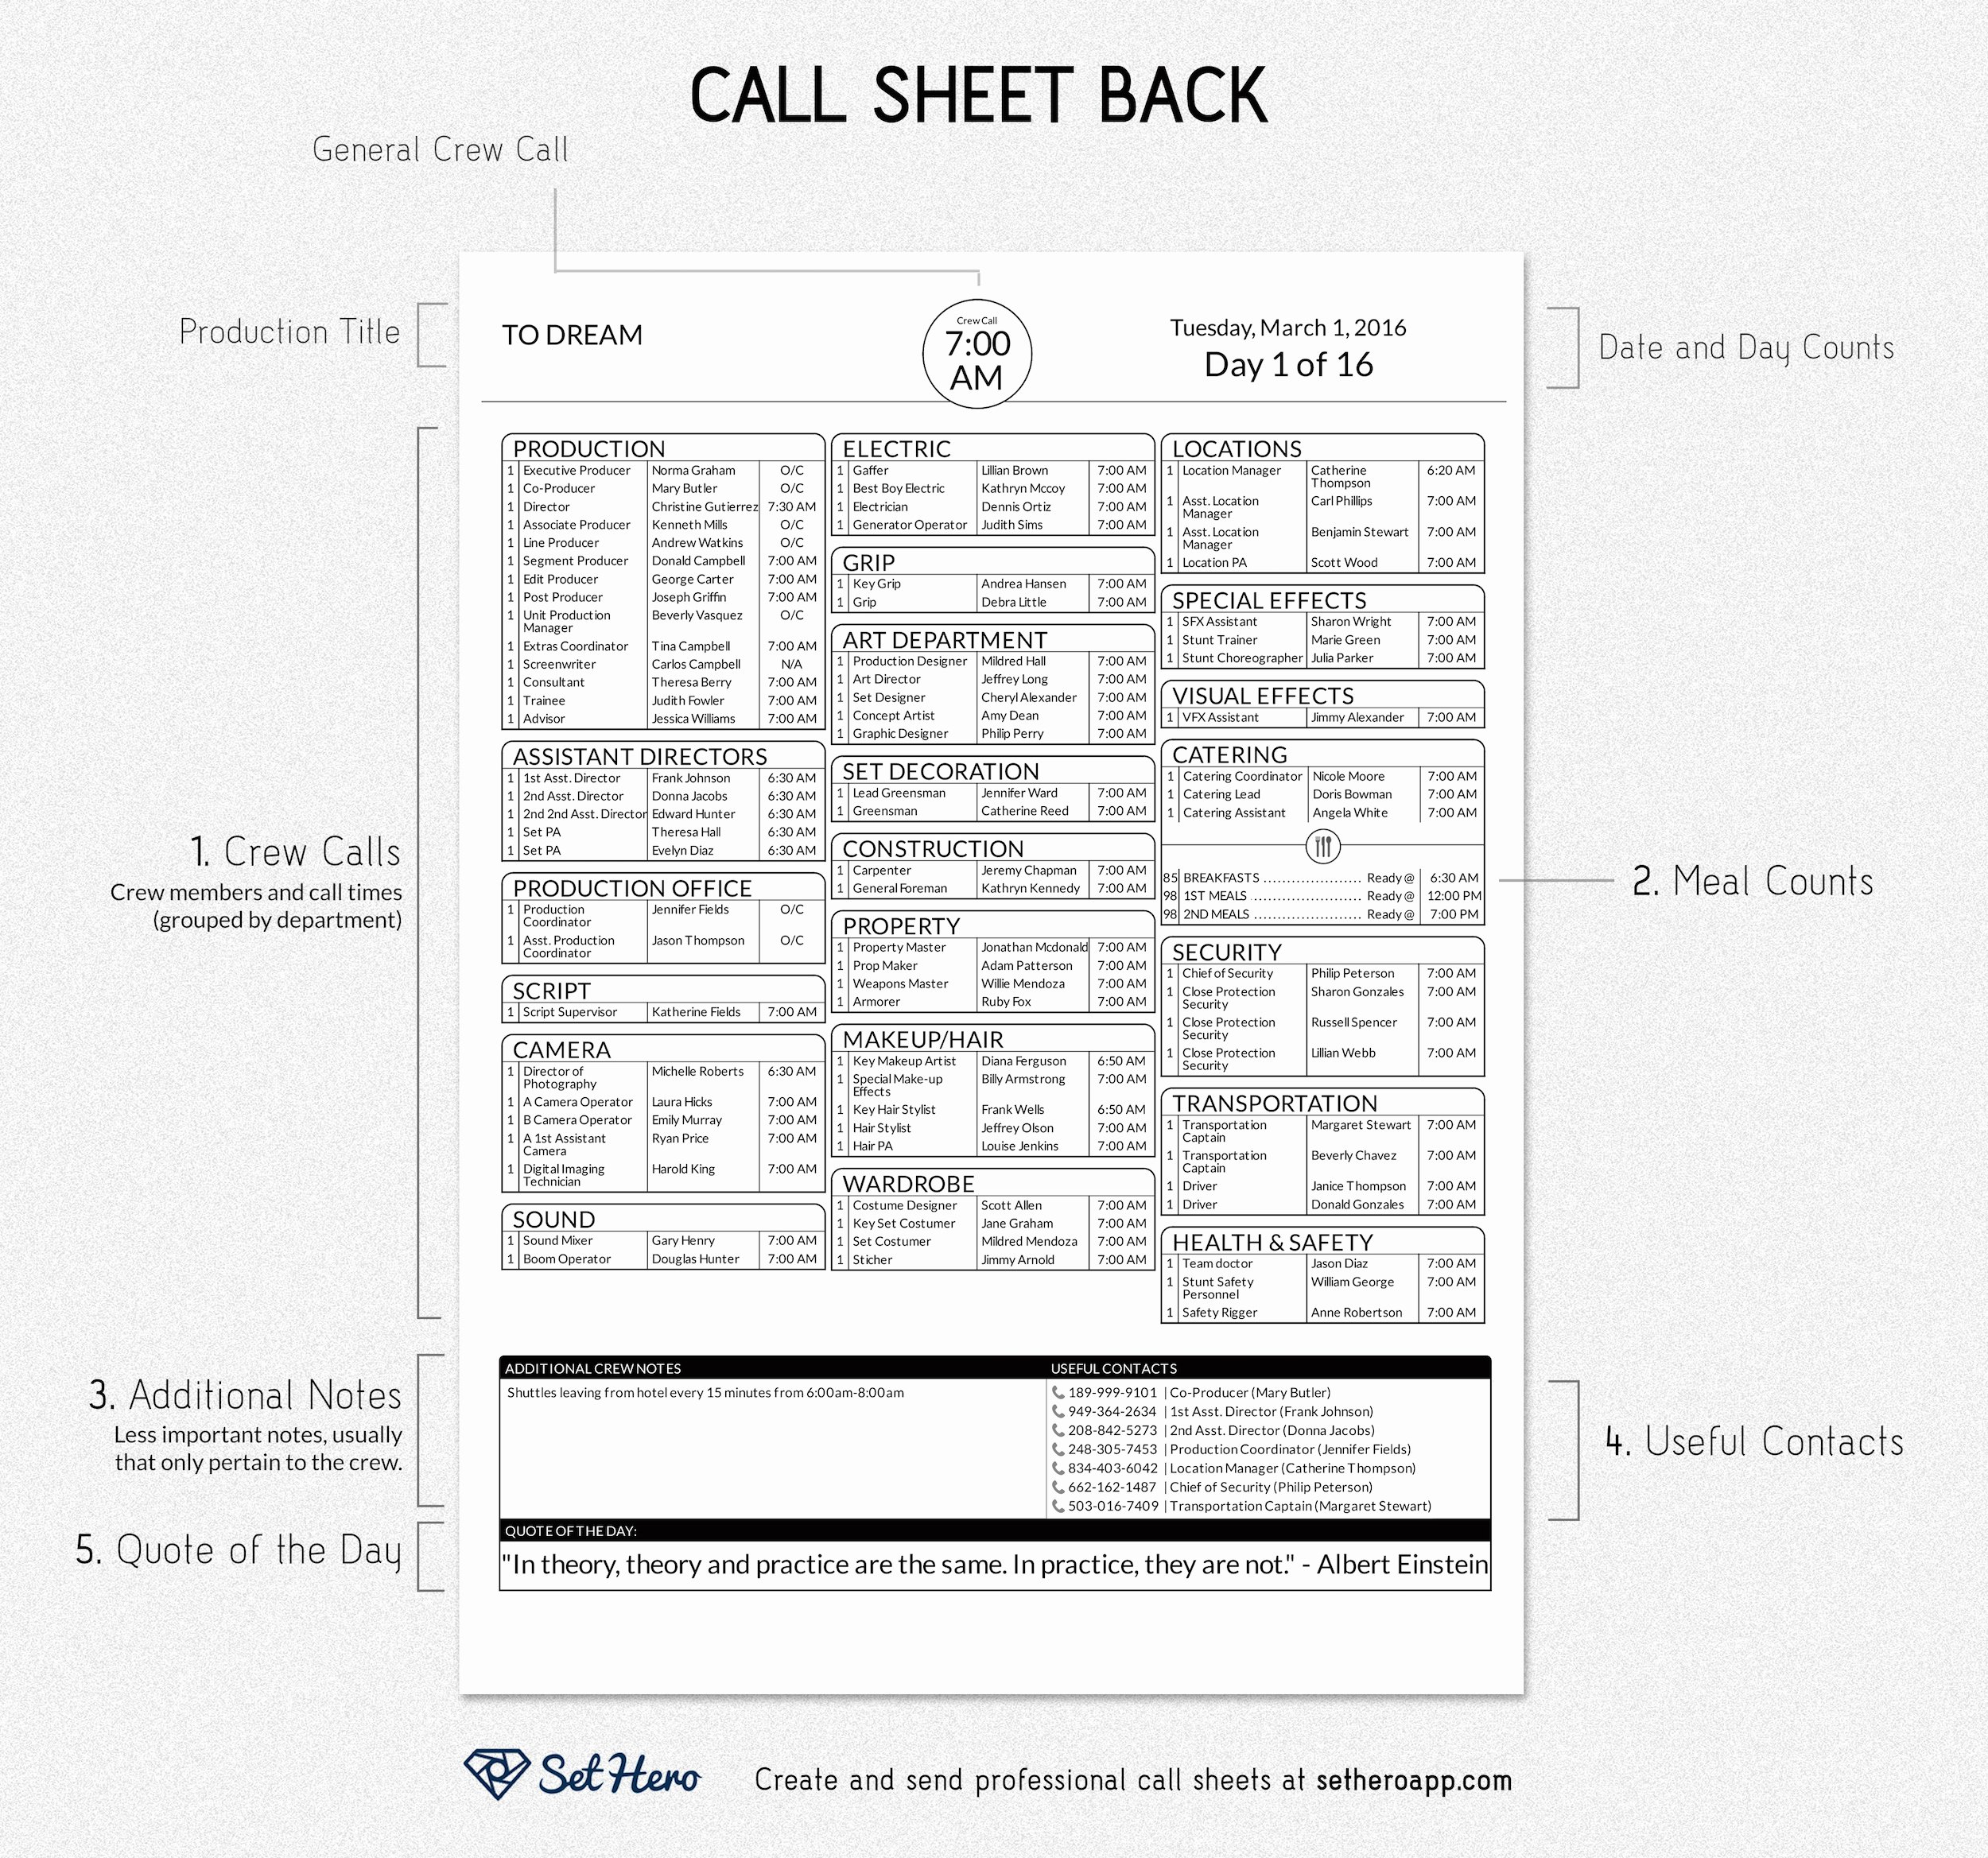 Call Back List Template Elegant Creating Professional Call Sheets Free Template Download